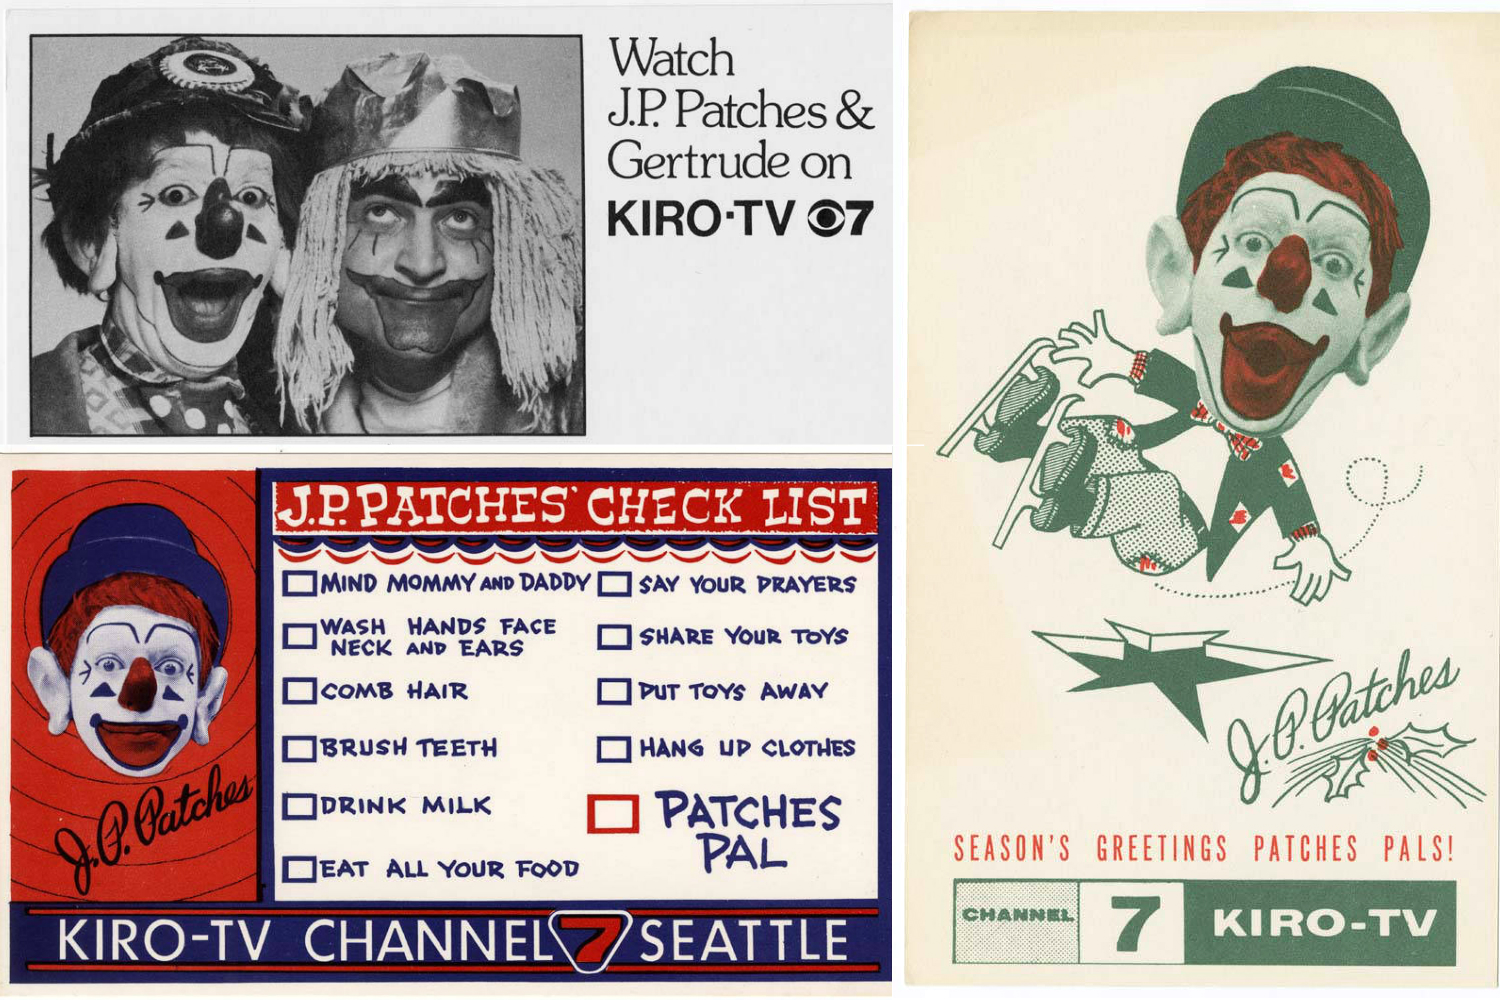 <p>KIRO promotional material for the J.P. Patches Show (Image credit: The Museum of History and Industry)</p>